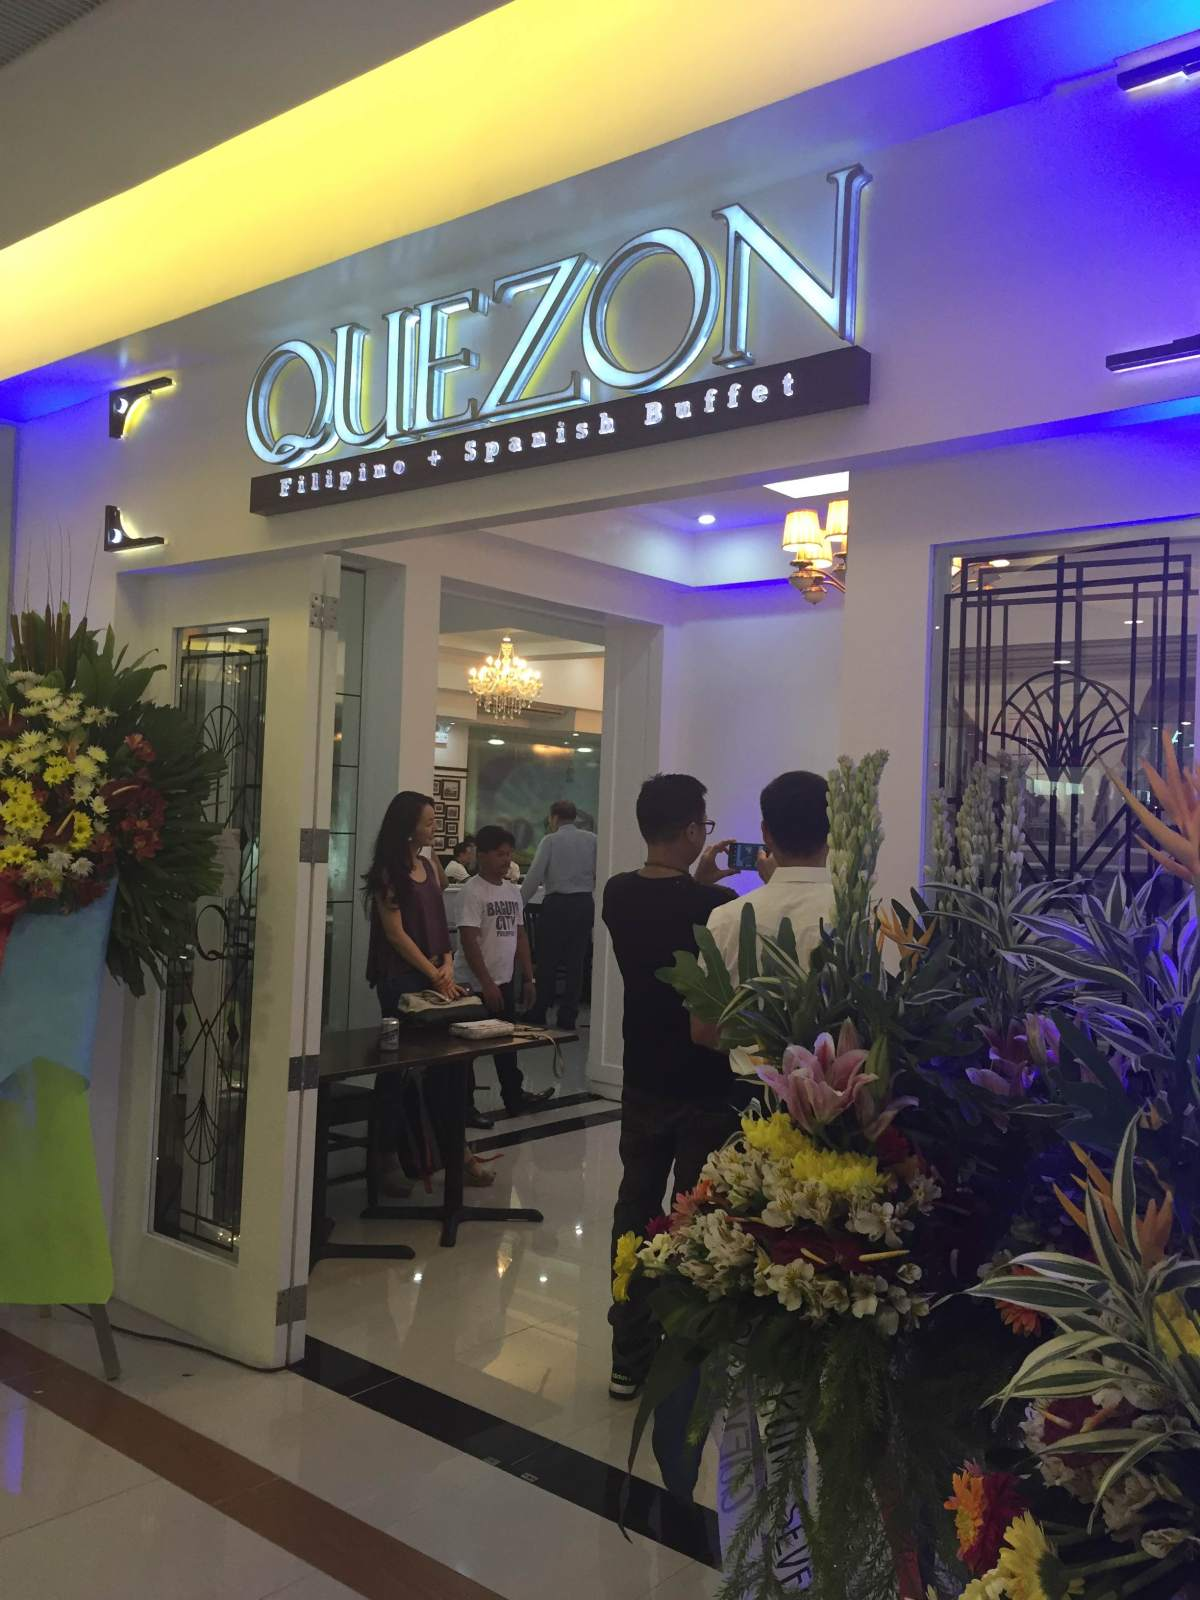 Quezon Buffet – Best Sisig in the Metro